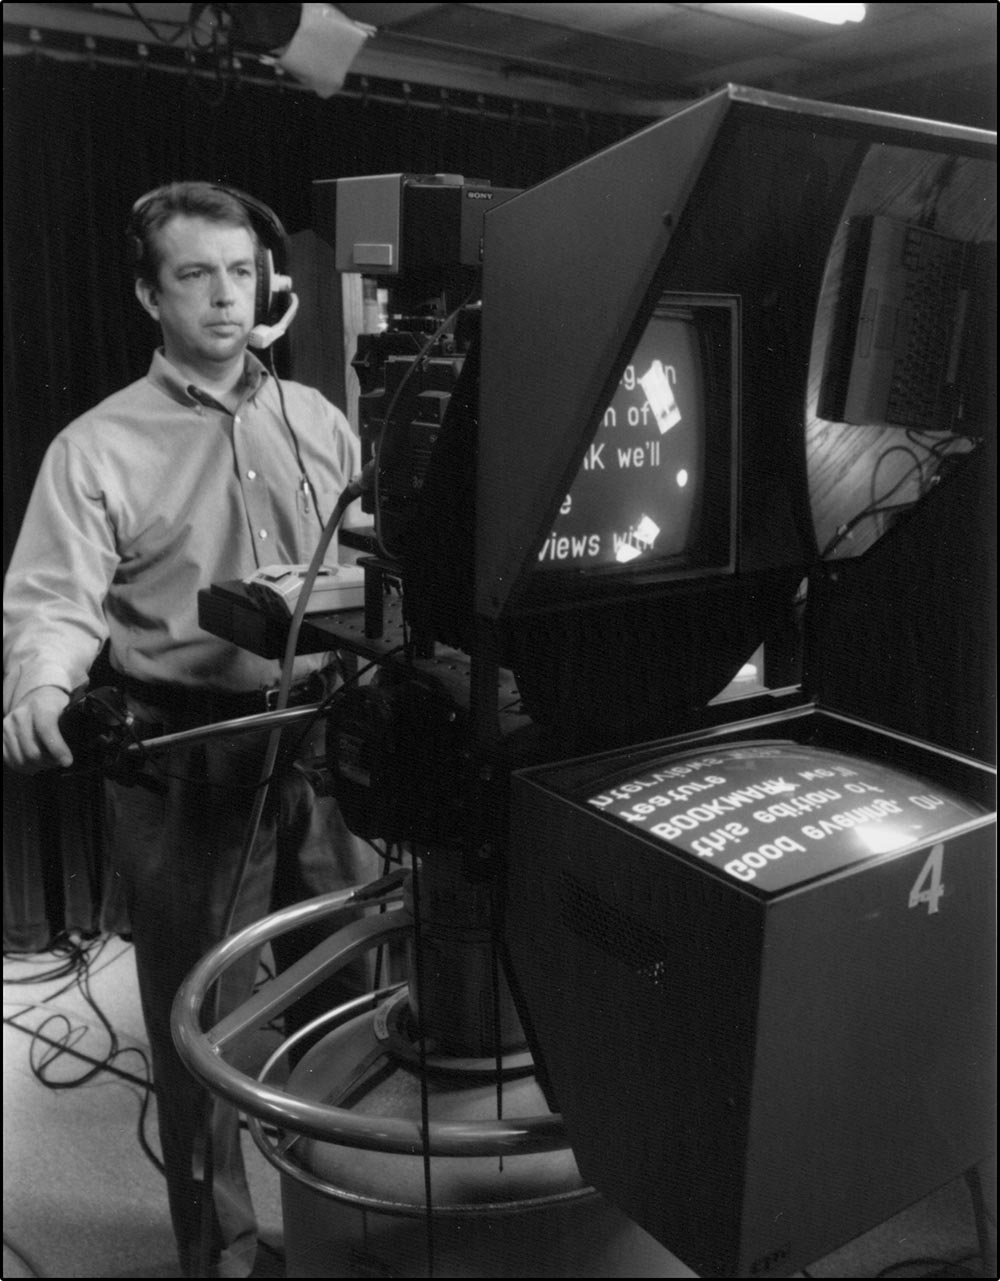 Figure 5.2 A TelePrompTer displays news copy directly in front of the lens.